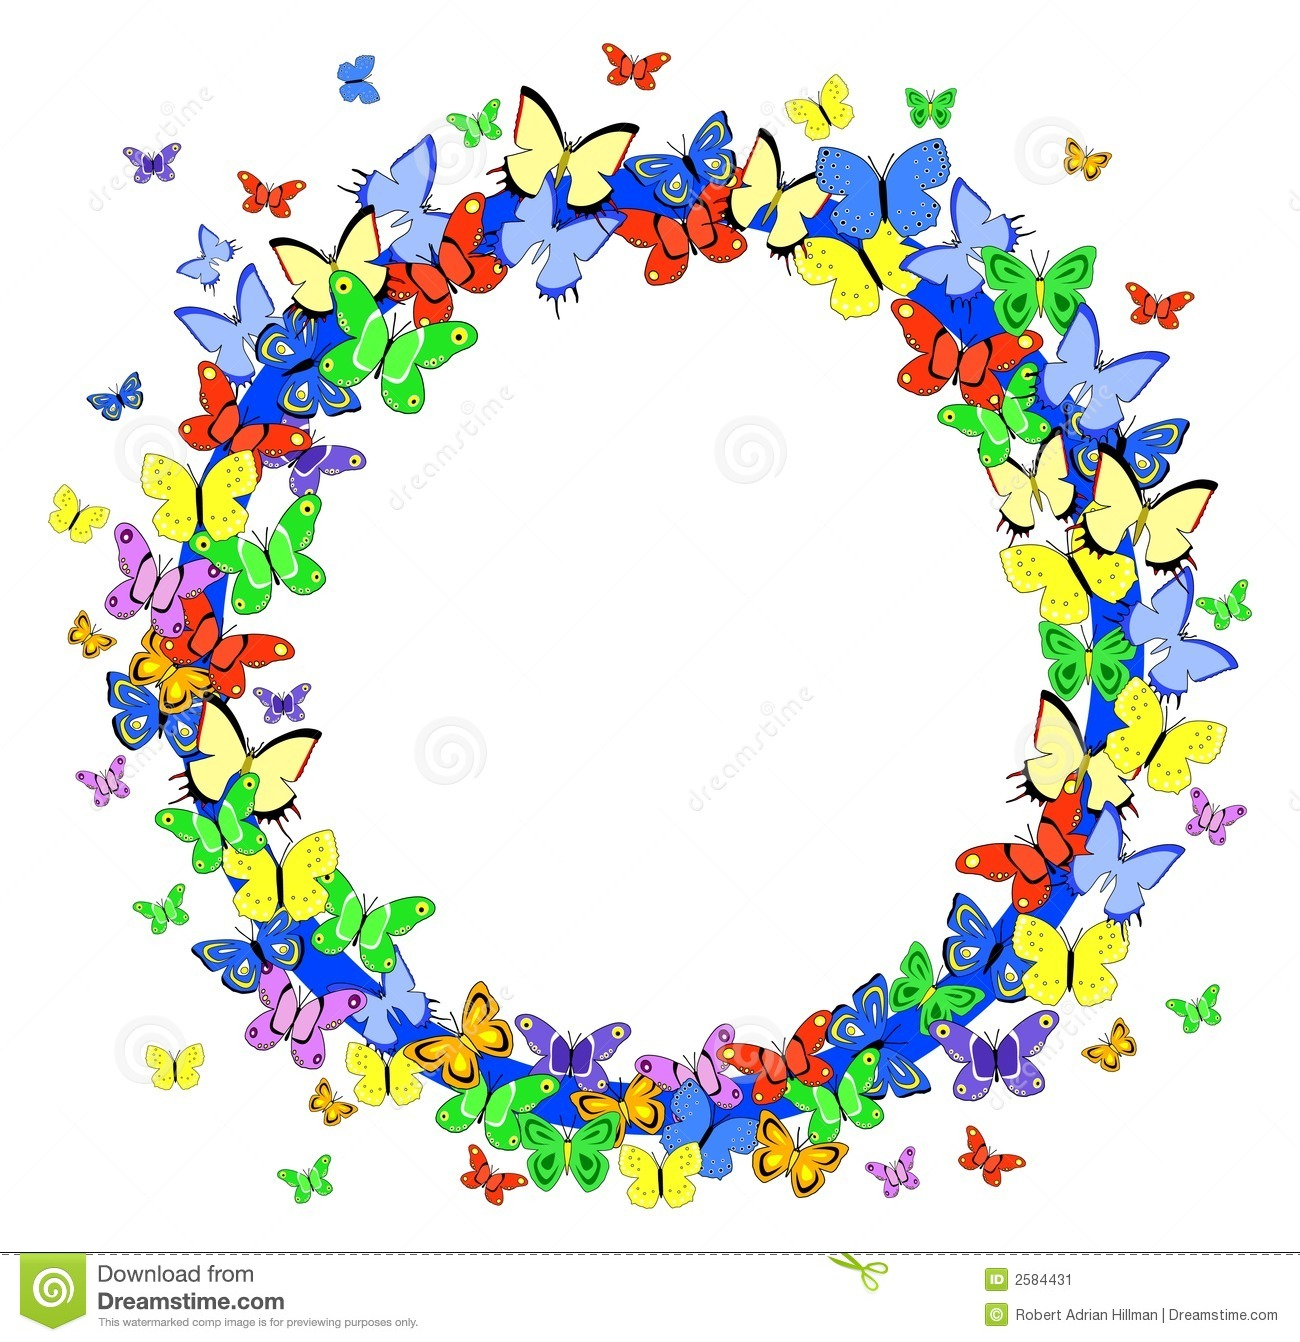 Frame clipart butterfly #2